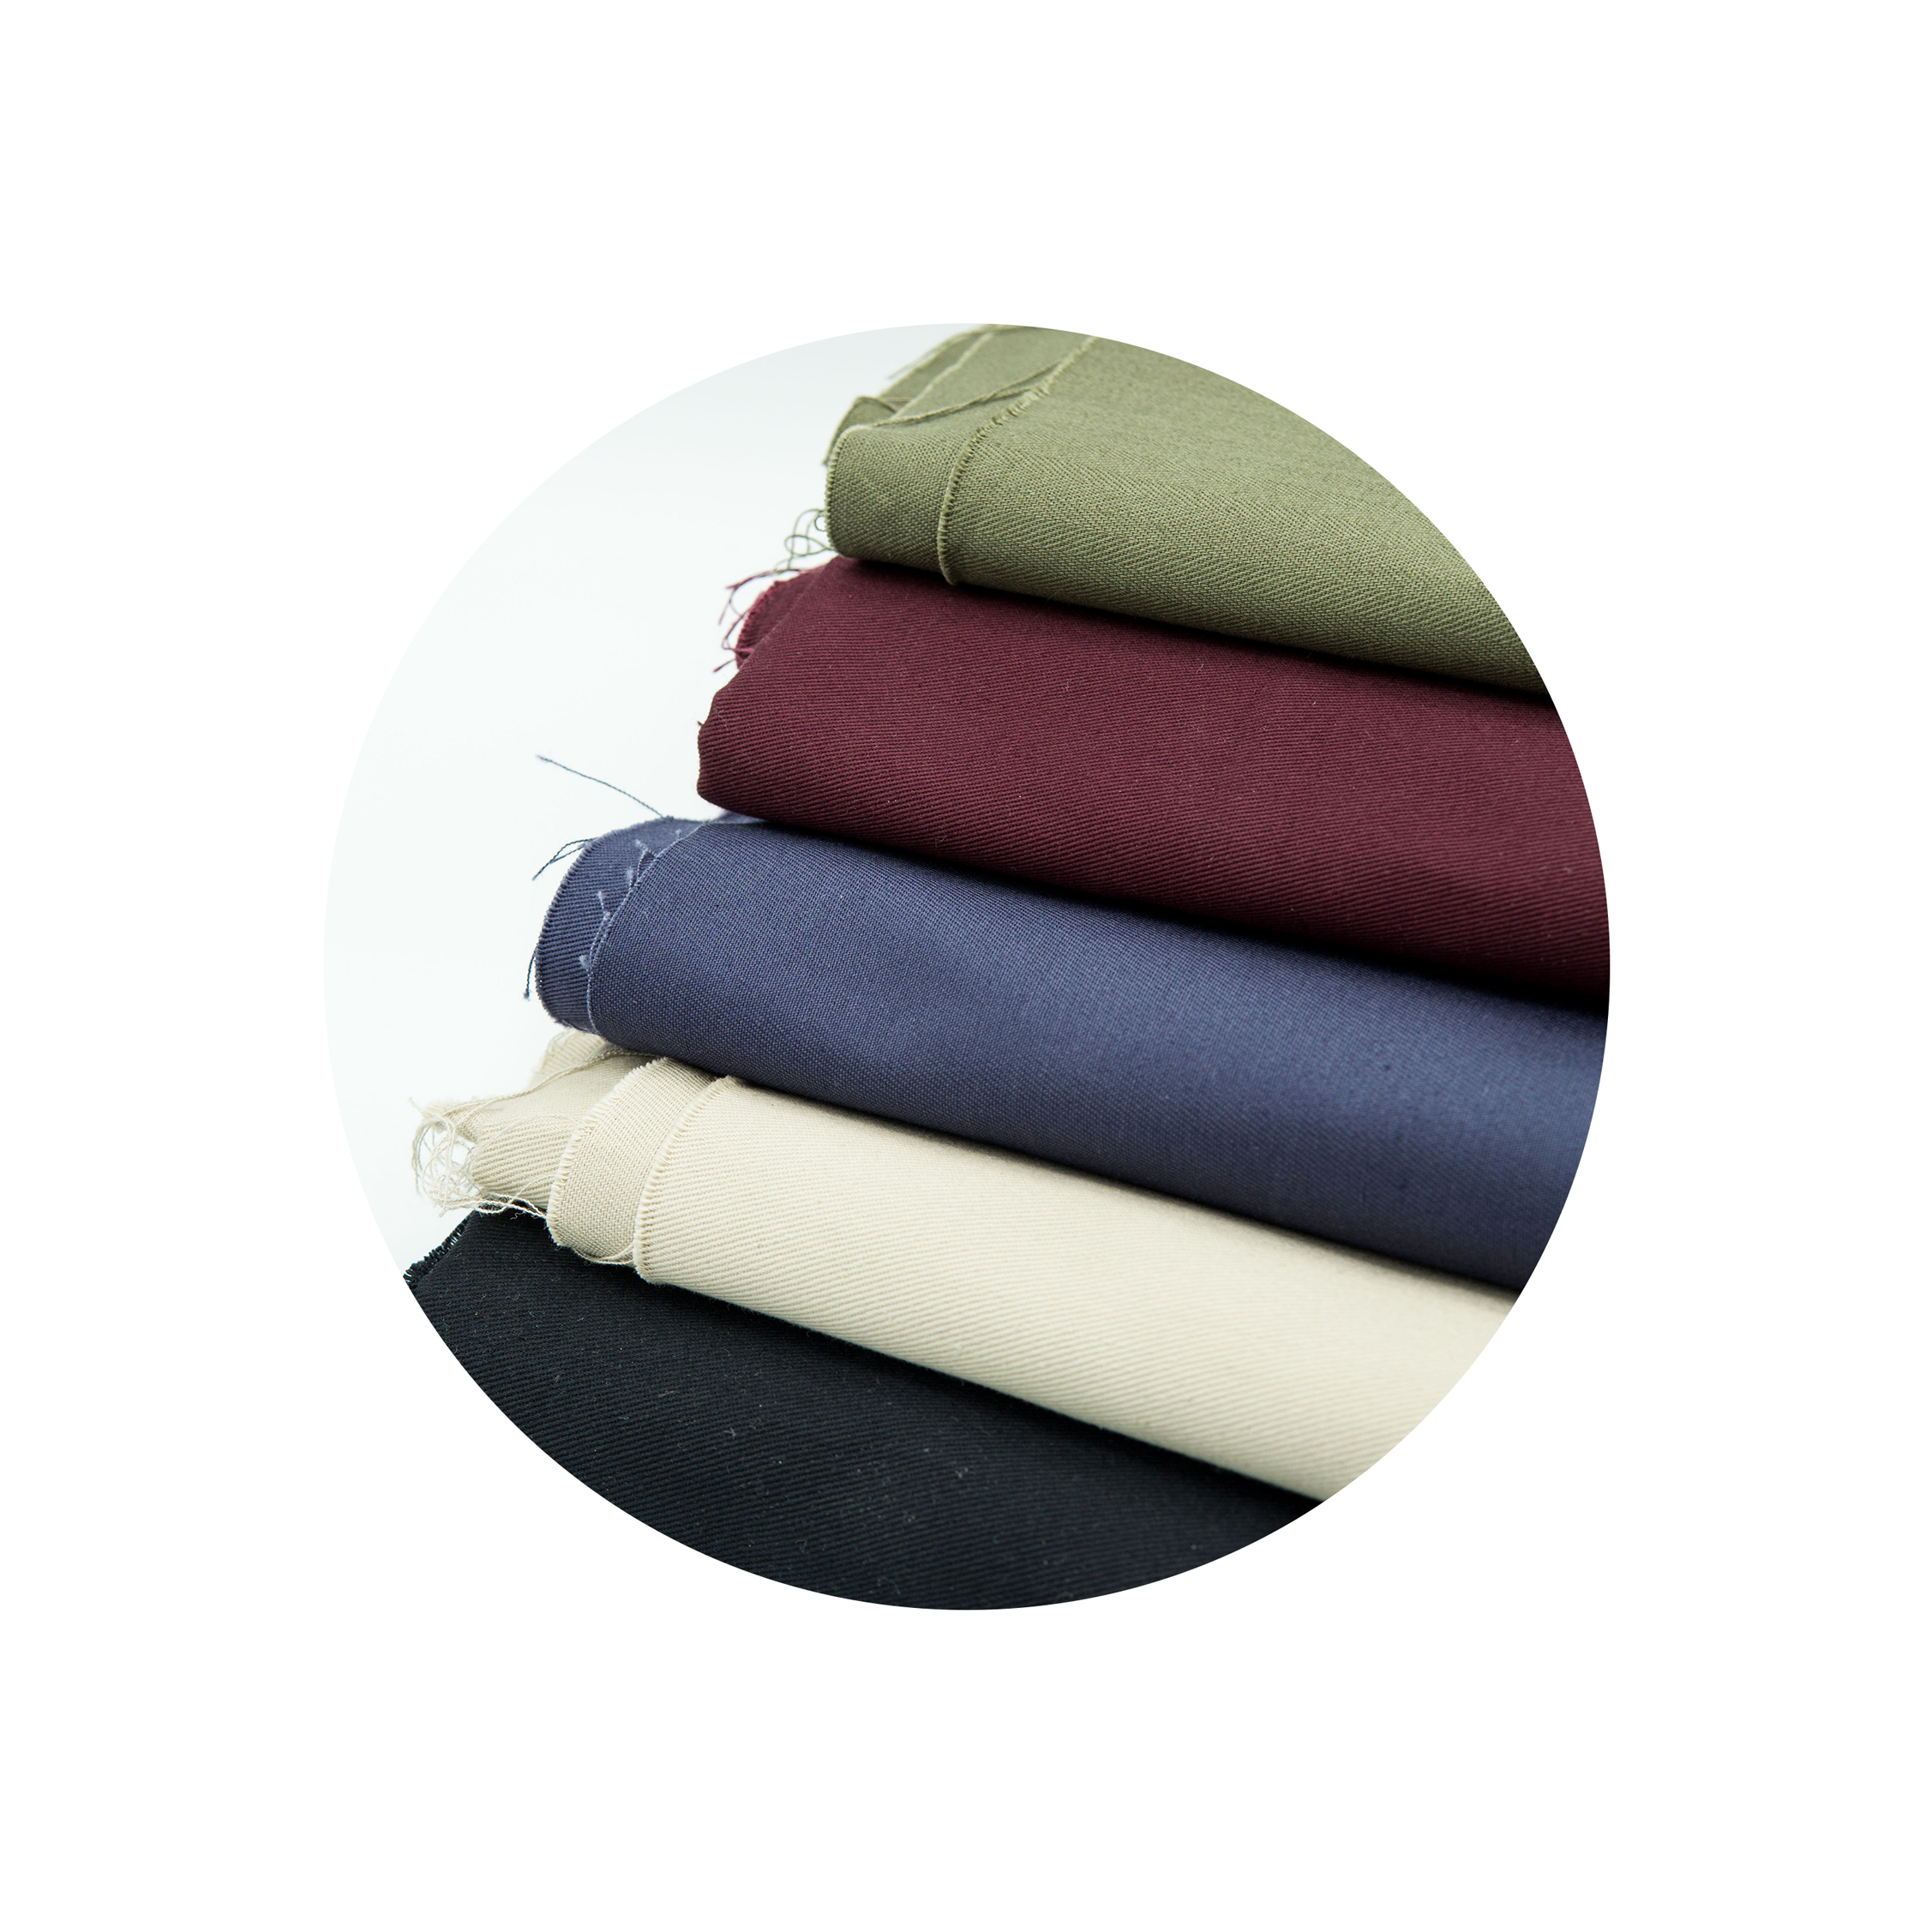 Organic Cotton Twill - Deadstock, leftover, and reject fabrics sourced from curtain manufacturers.